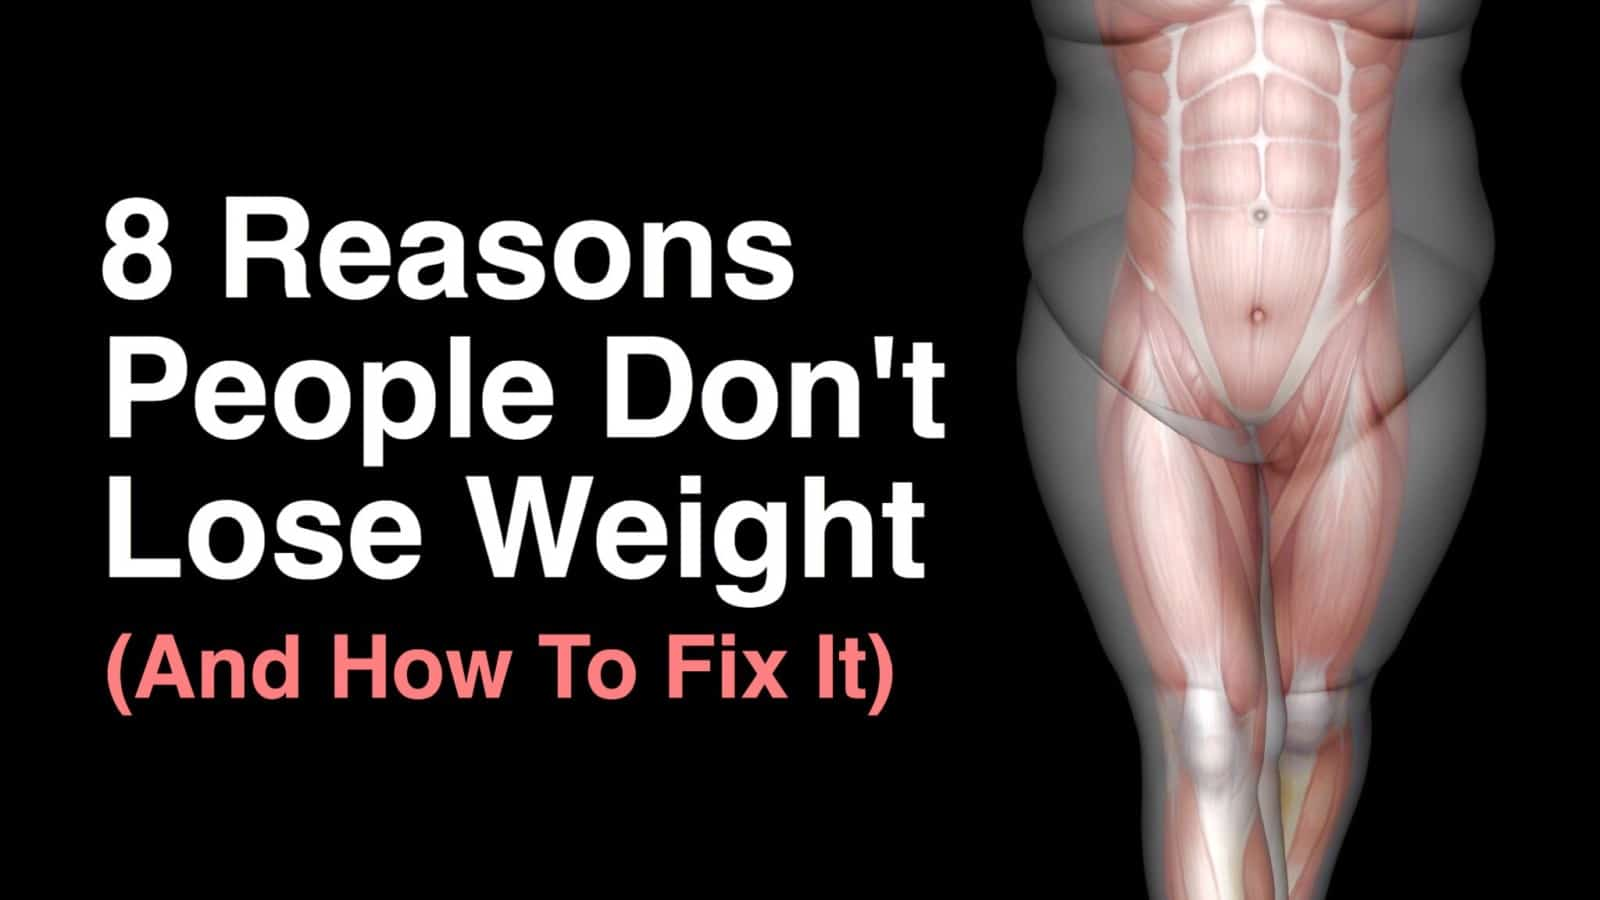 8 Reasons People Don't Lose Weight (And How To Fix It